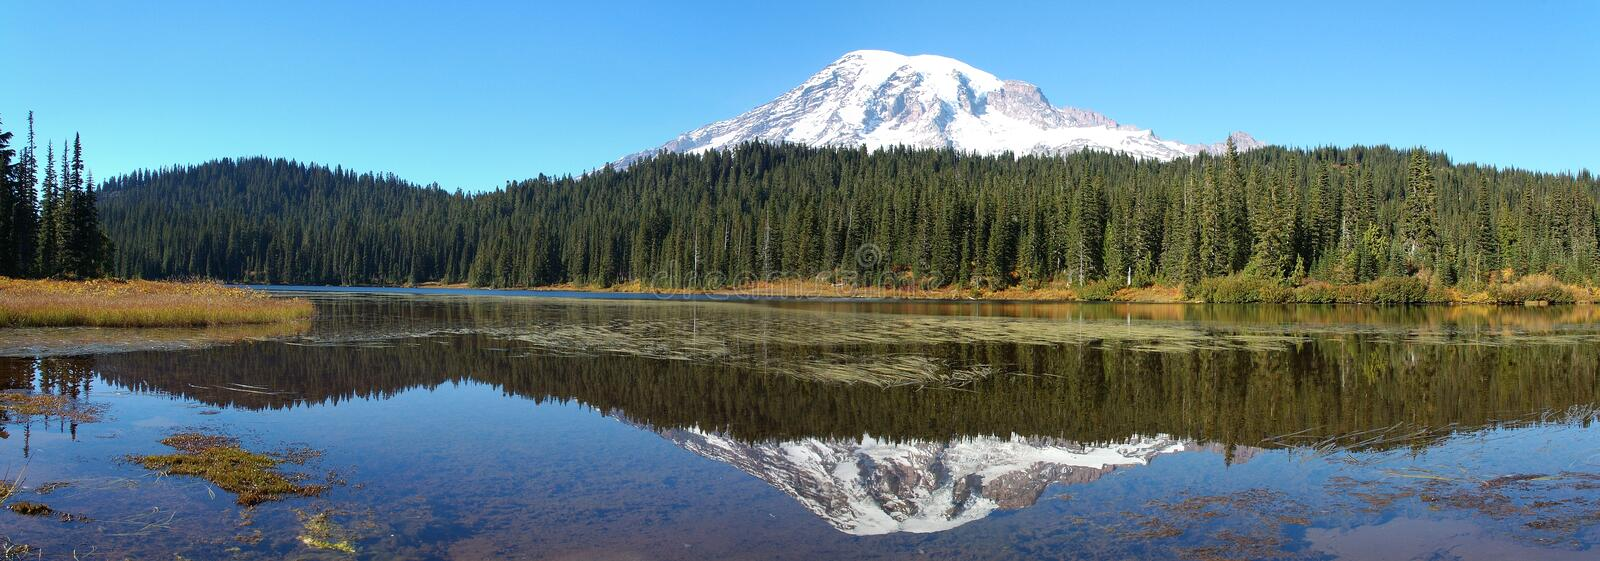 Mount Rainer royalty free stock photo